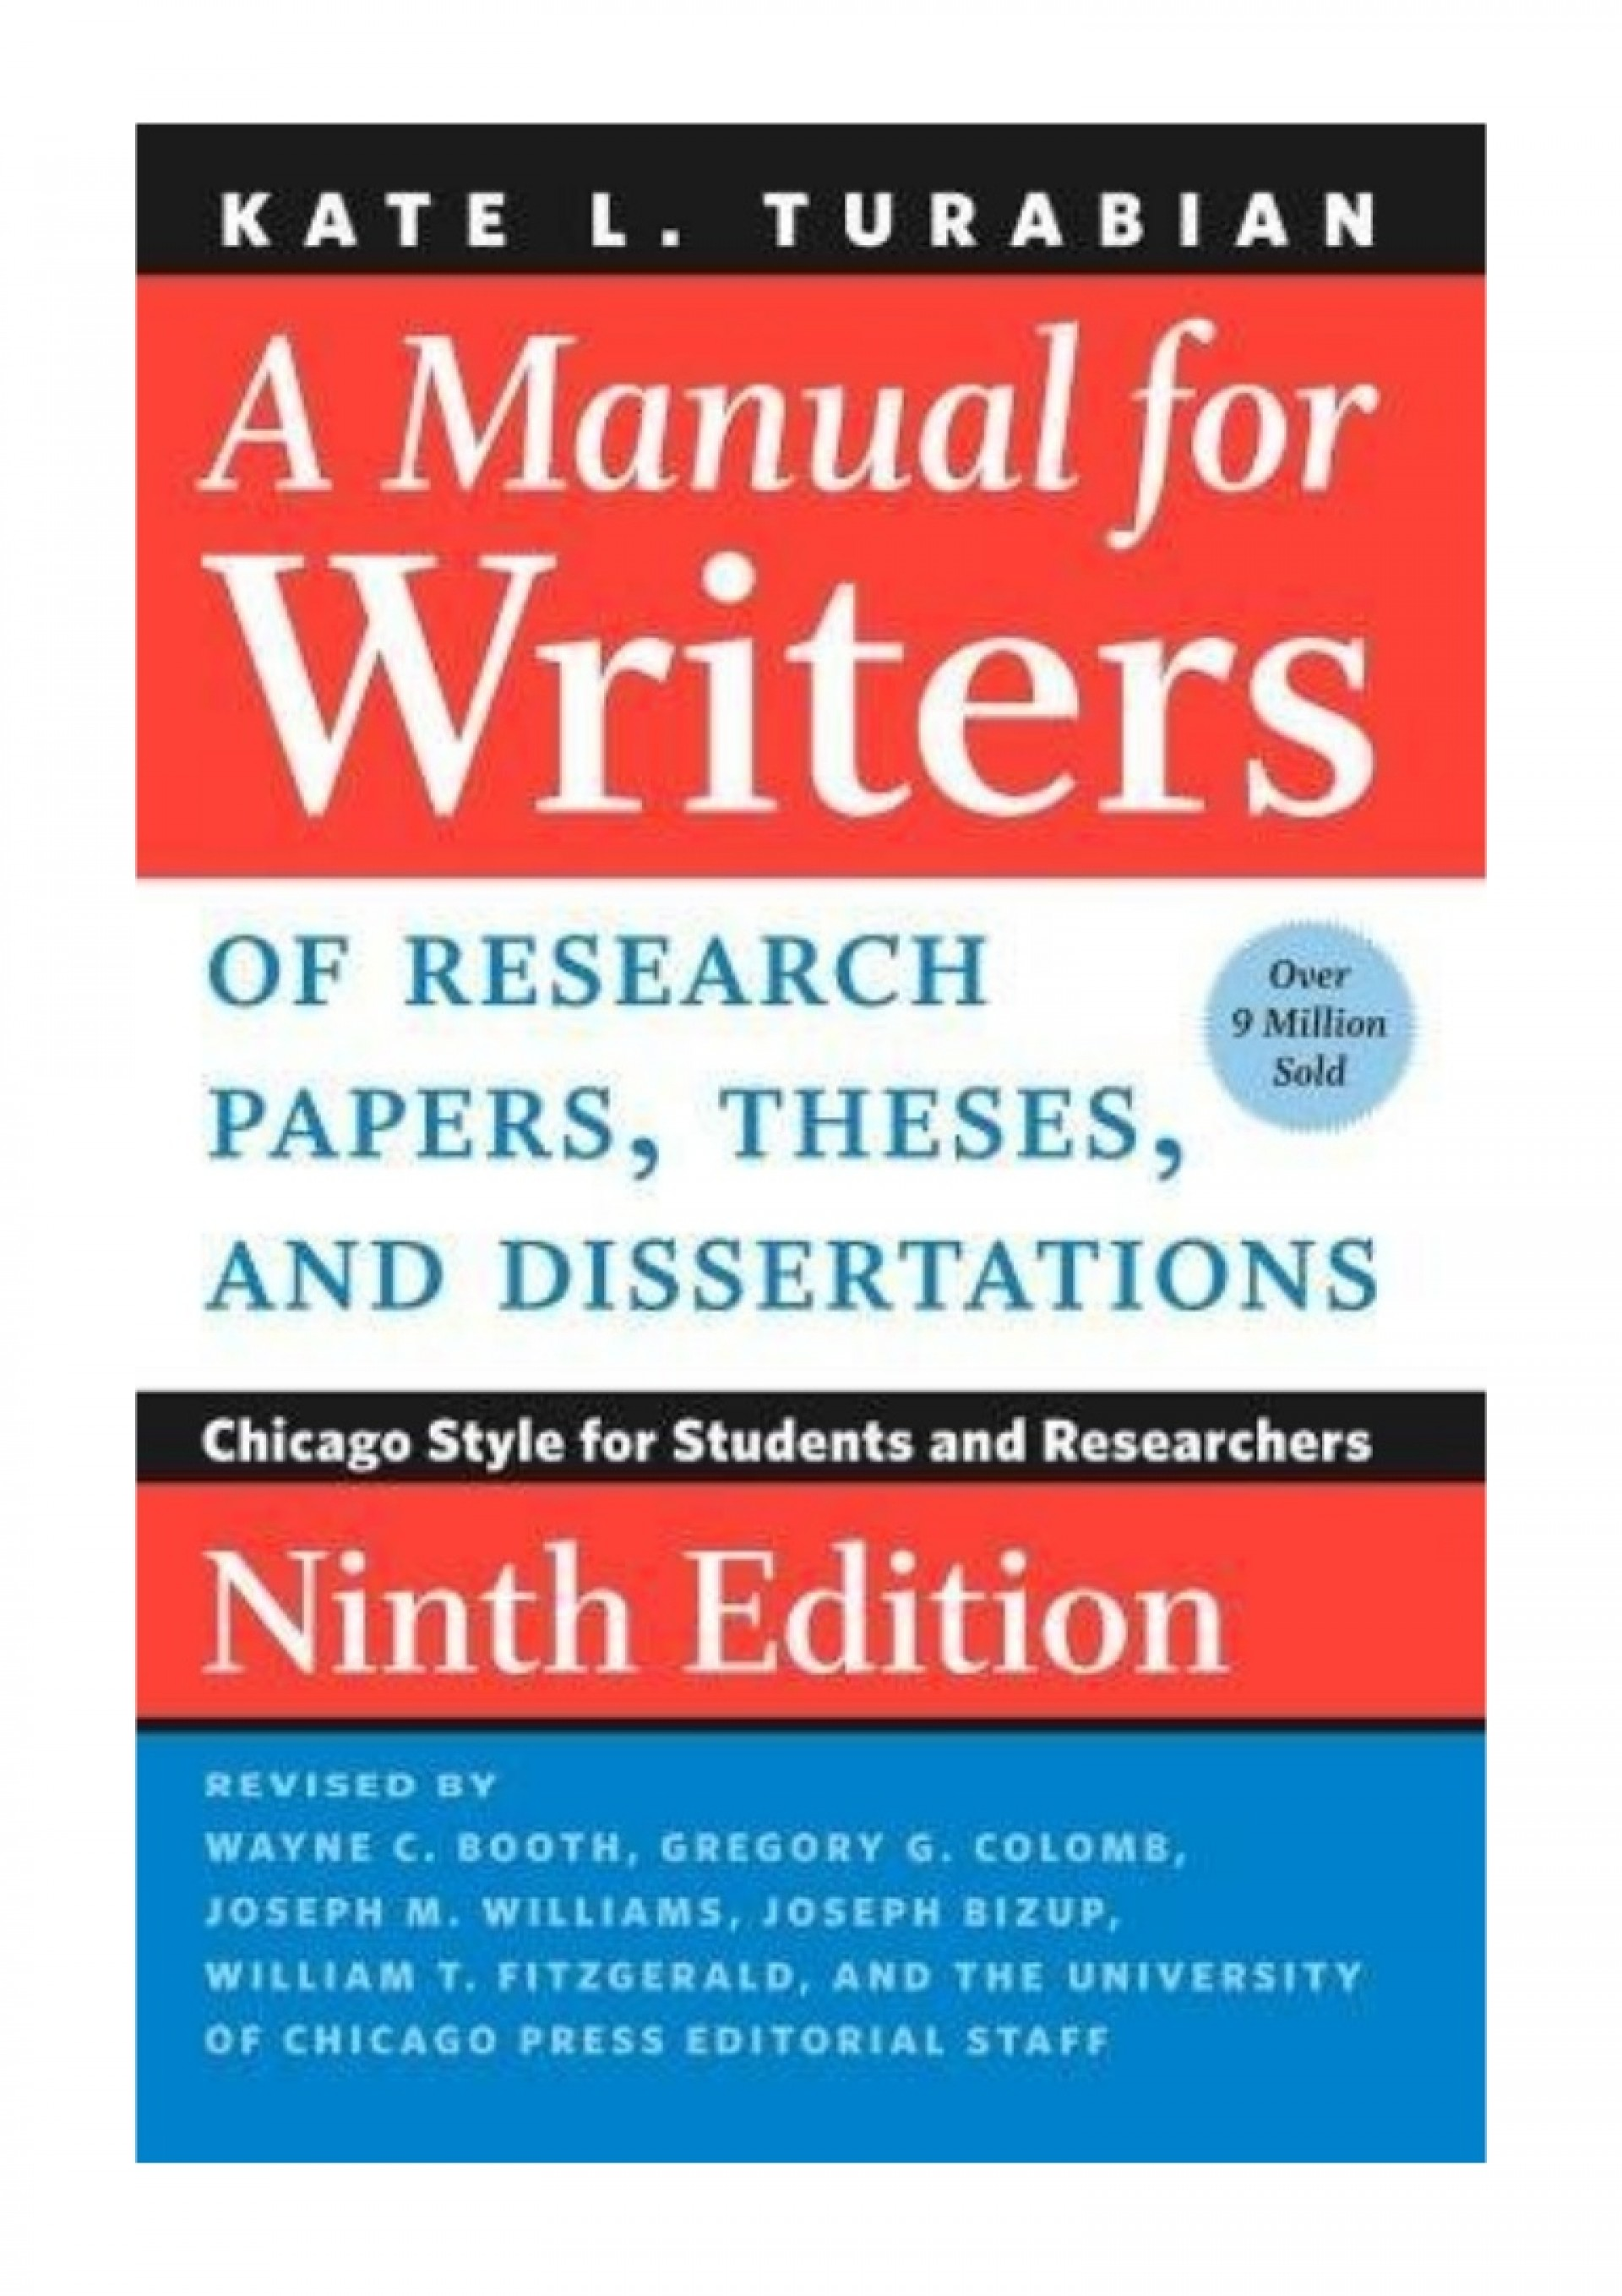 006 Manual For Writers Of Research Papers Theses And Dissertations Turabian Pdf Paper 022643057x Amanualforwritersofresearchpapersthesesanddissertationsnintheditionbykatel Wonderful A 1920